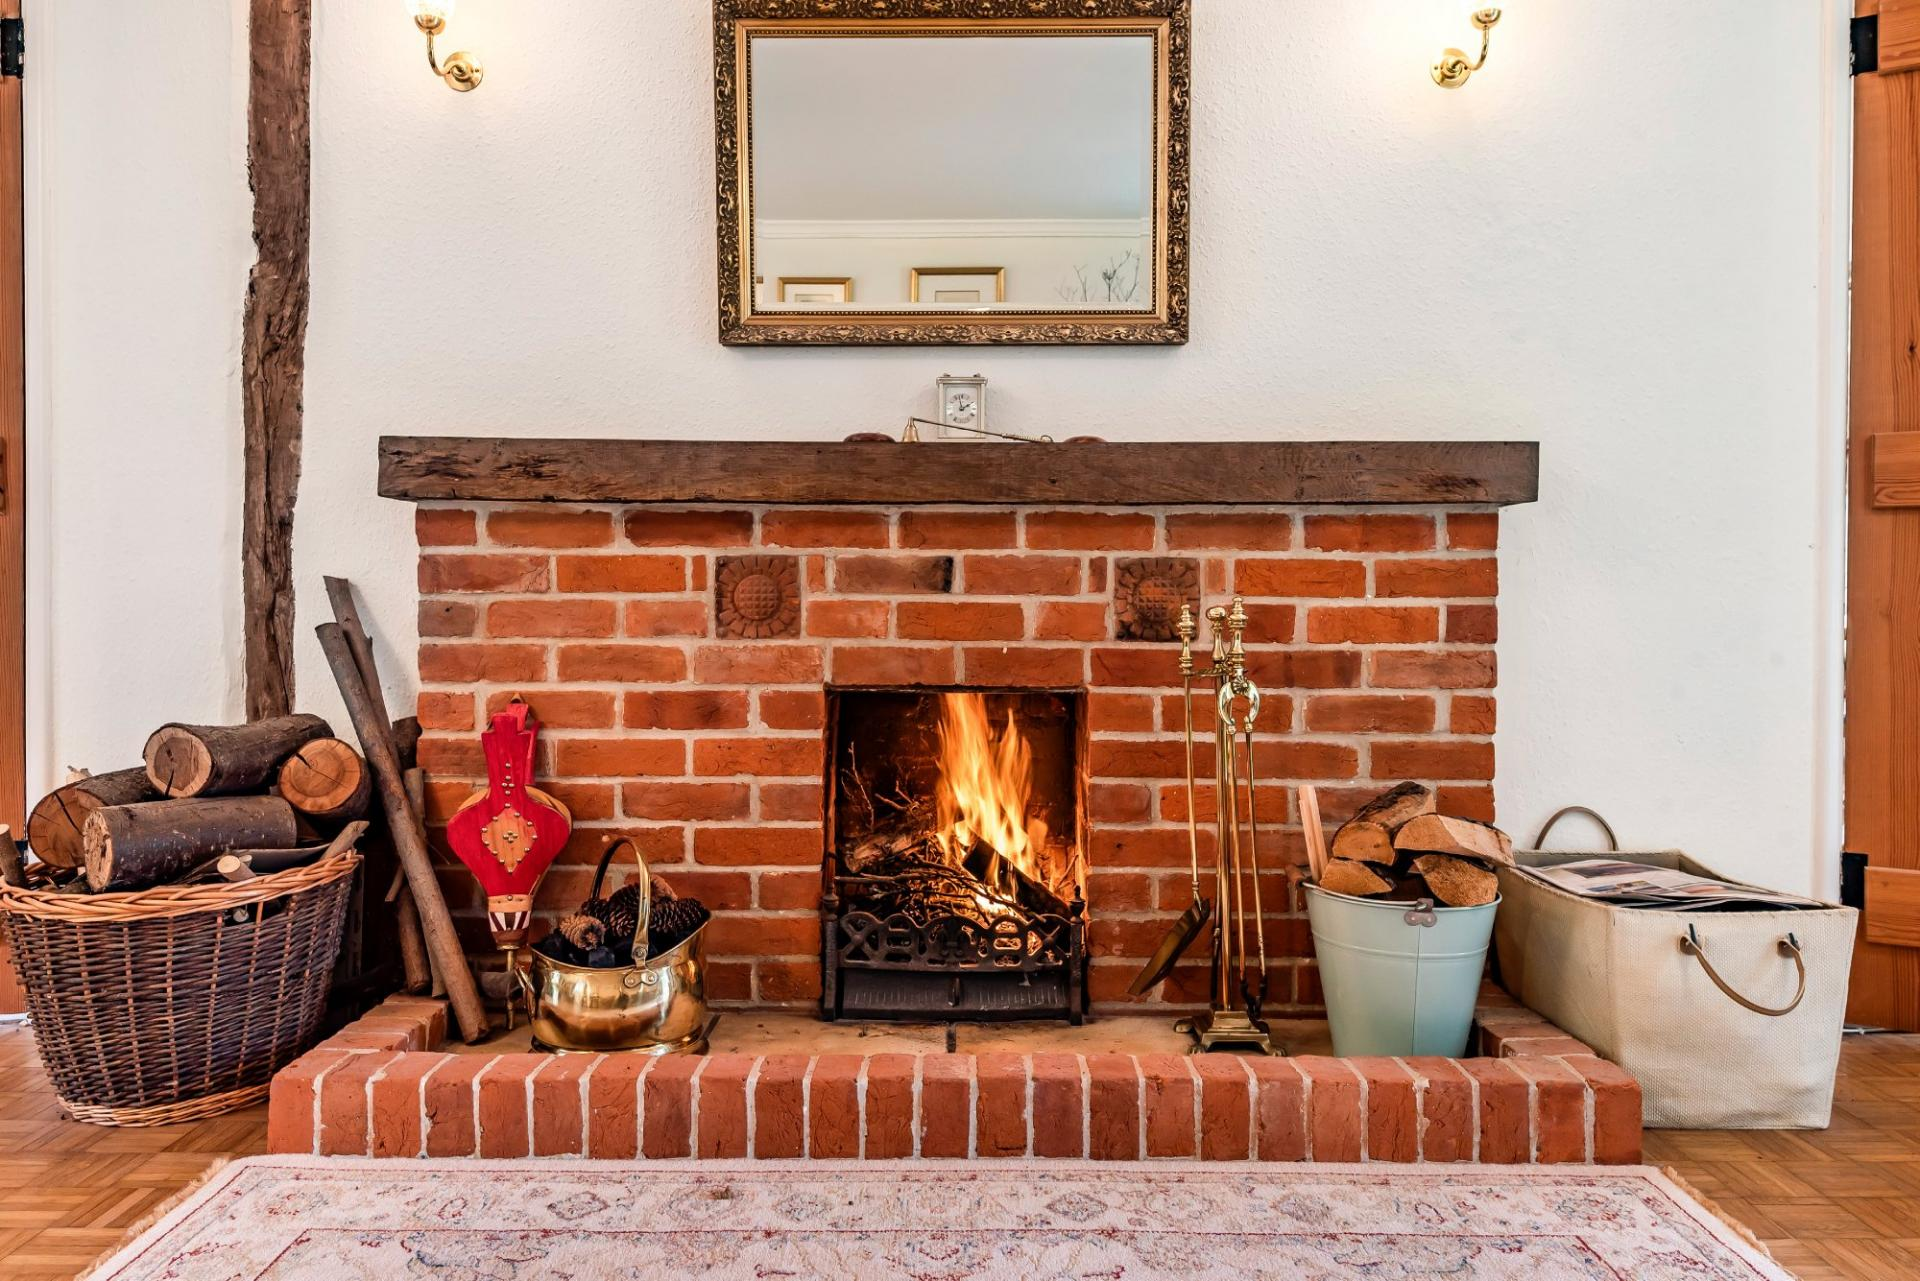 wintery exposed brick fireplace with roaring lit fire